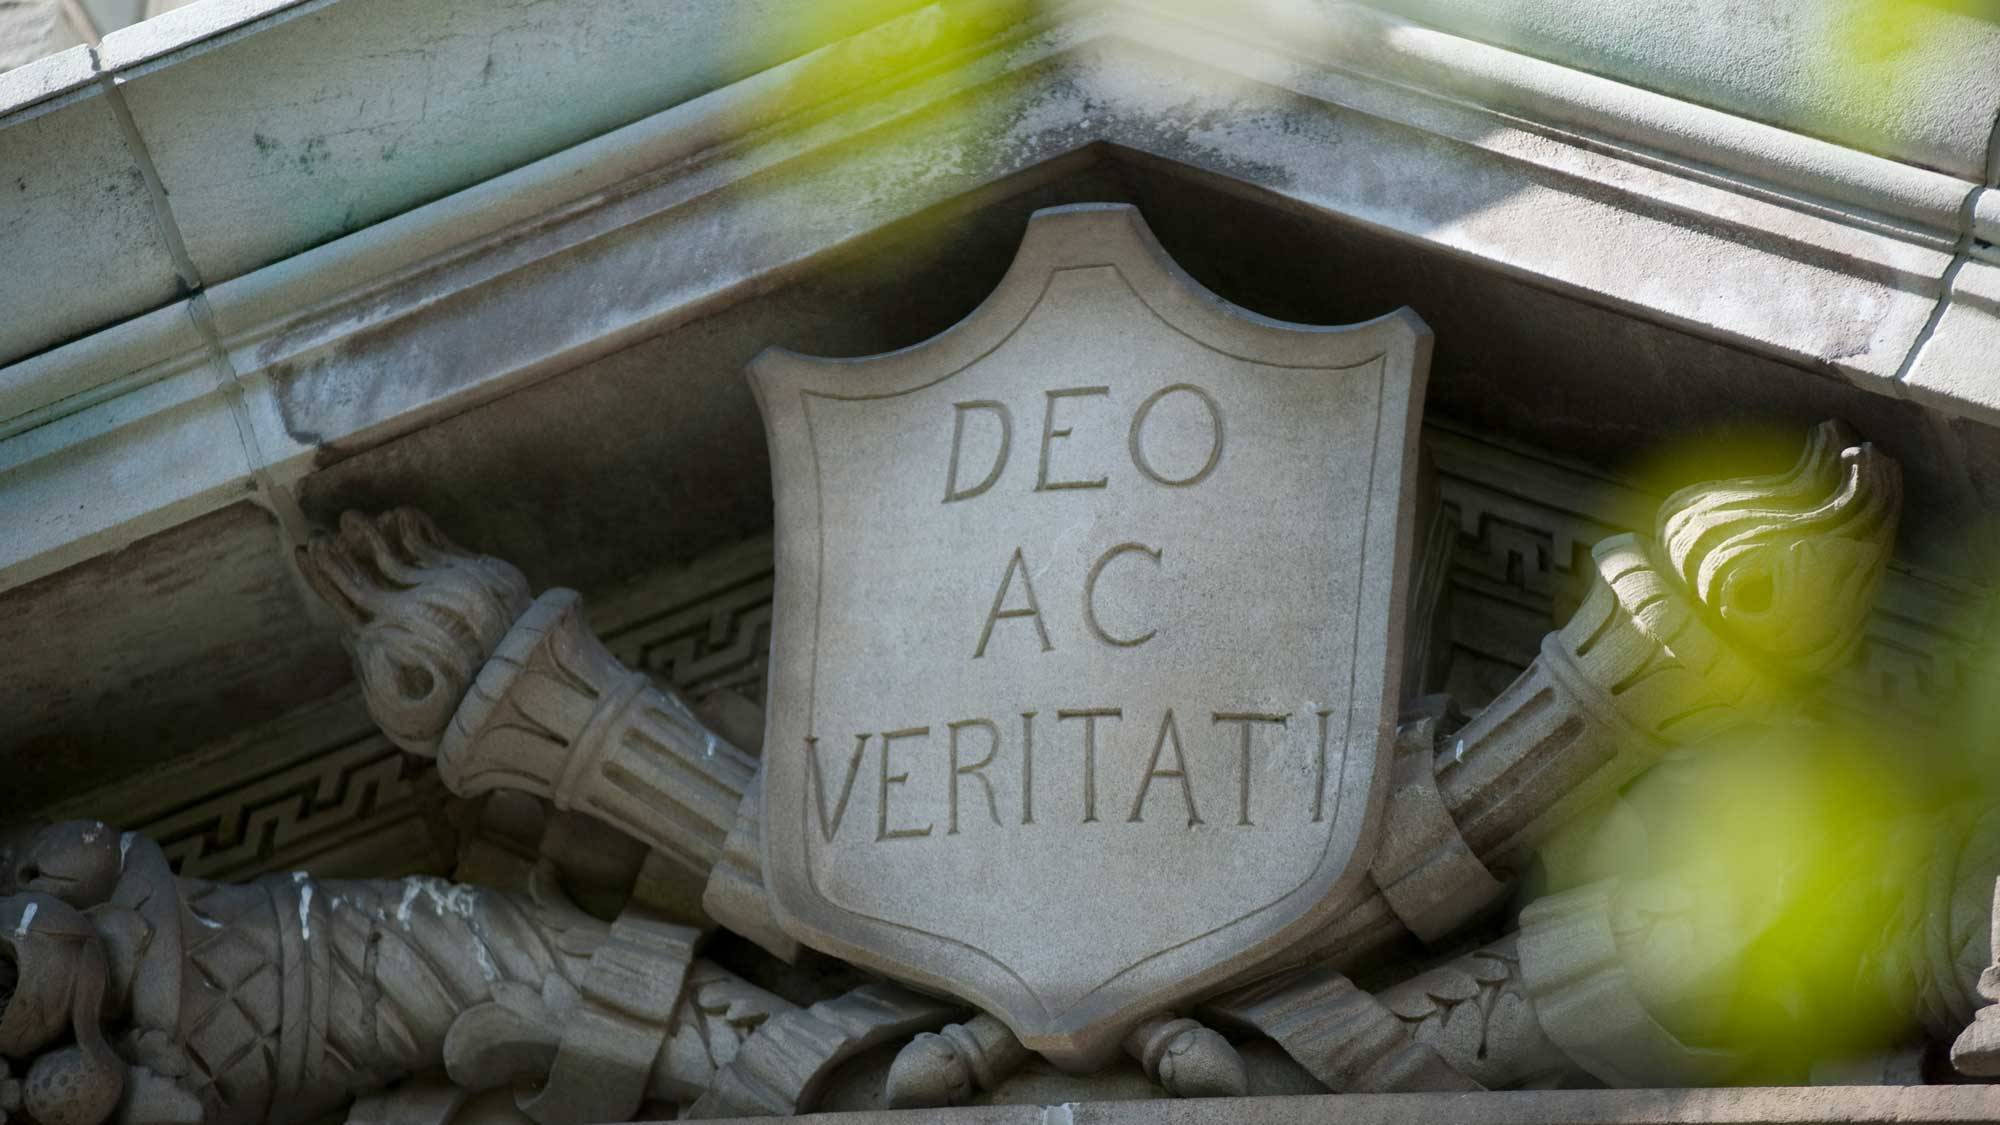 Deo Ac Veritati carved on stone shield